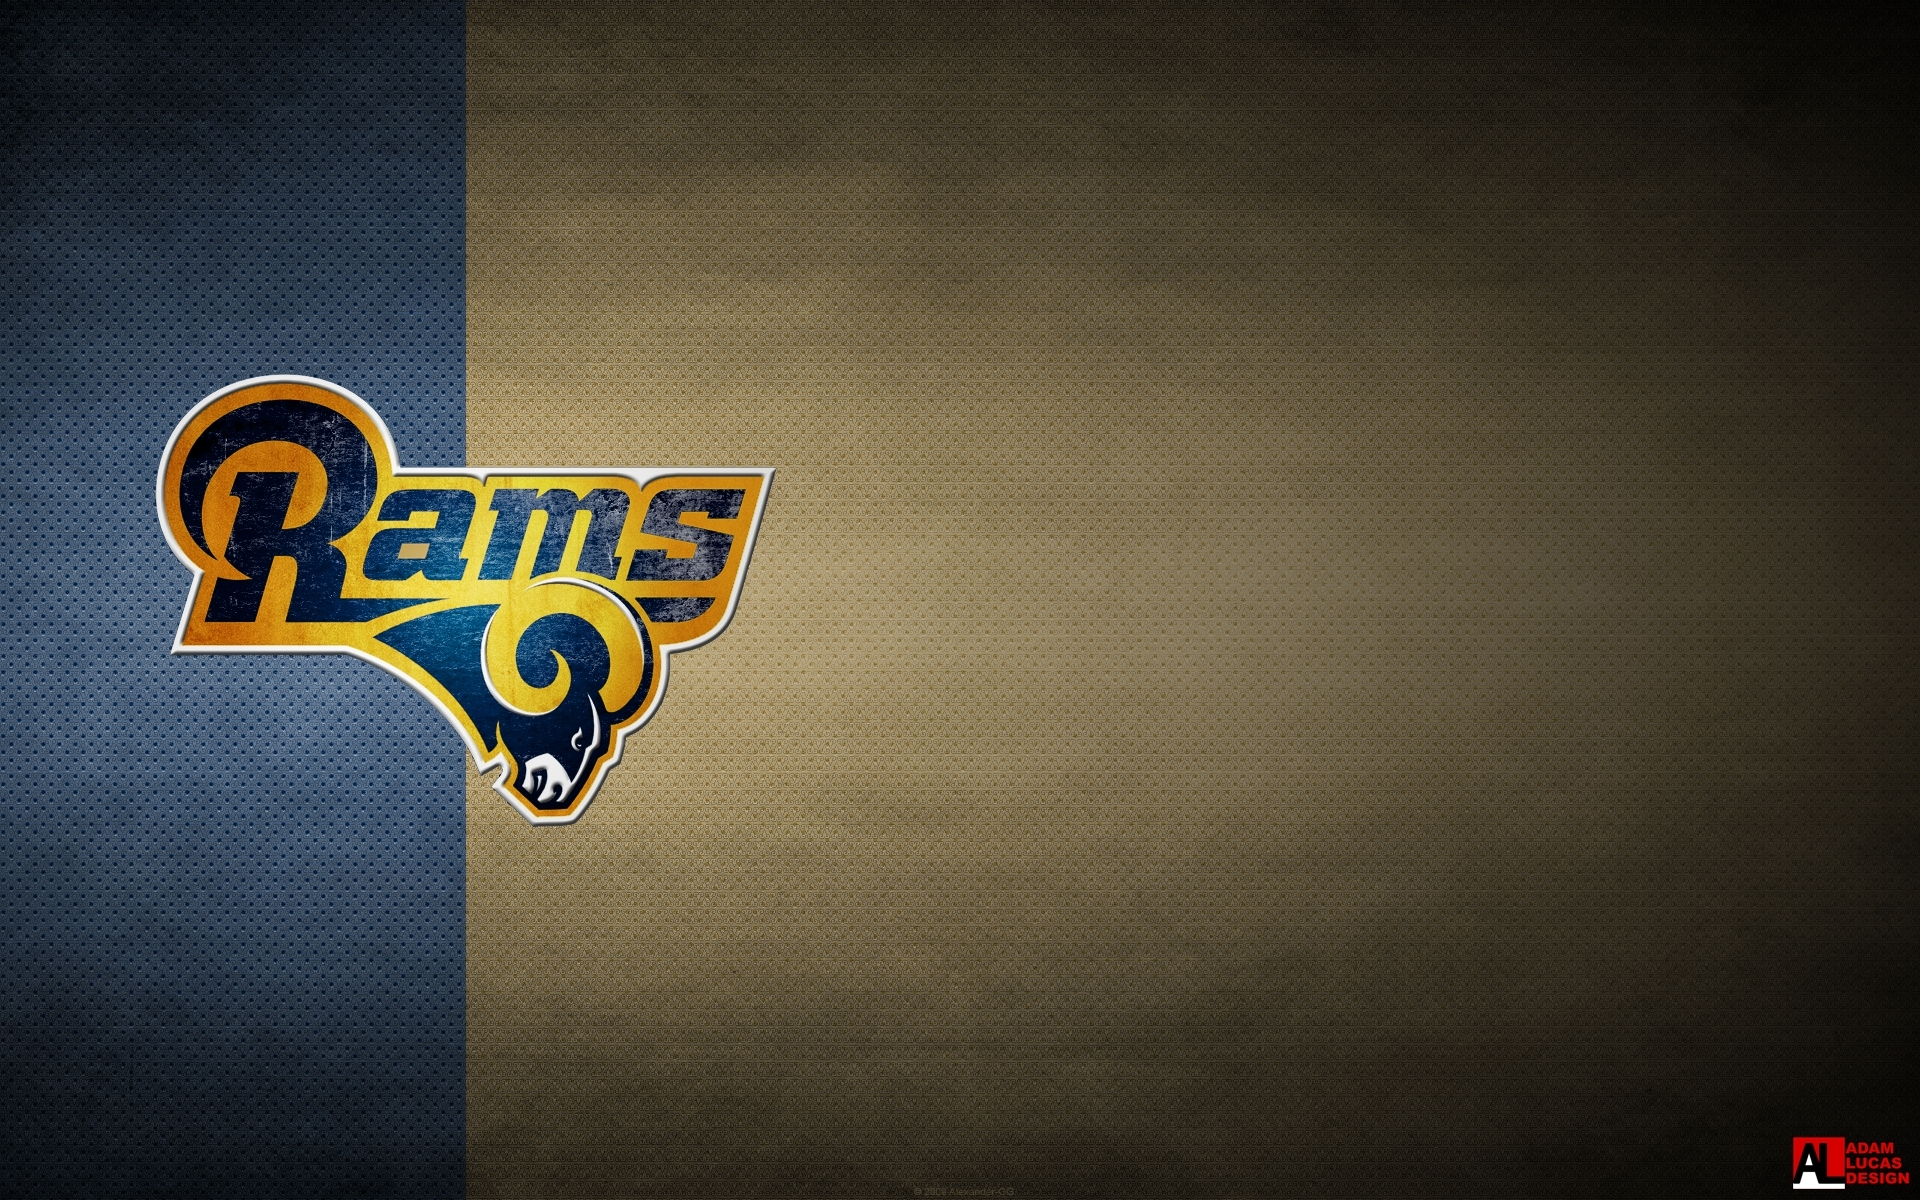 st louis rams wallpapers, incredible backgrounds of st louis rams